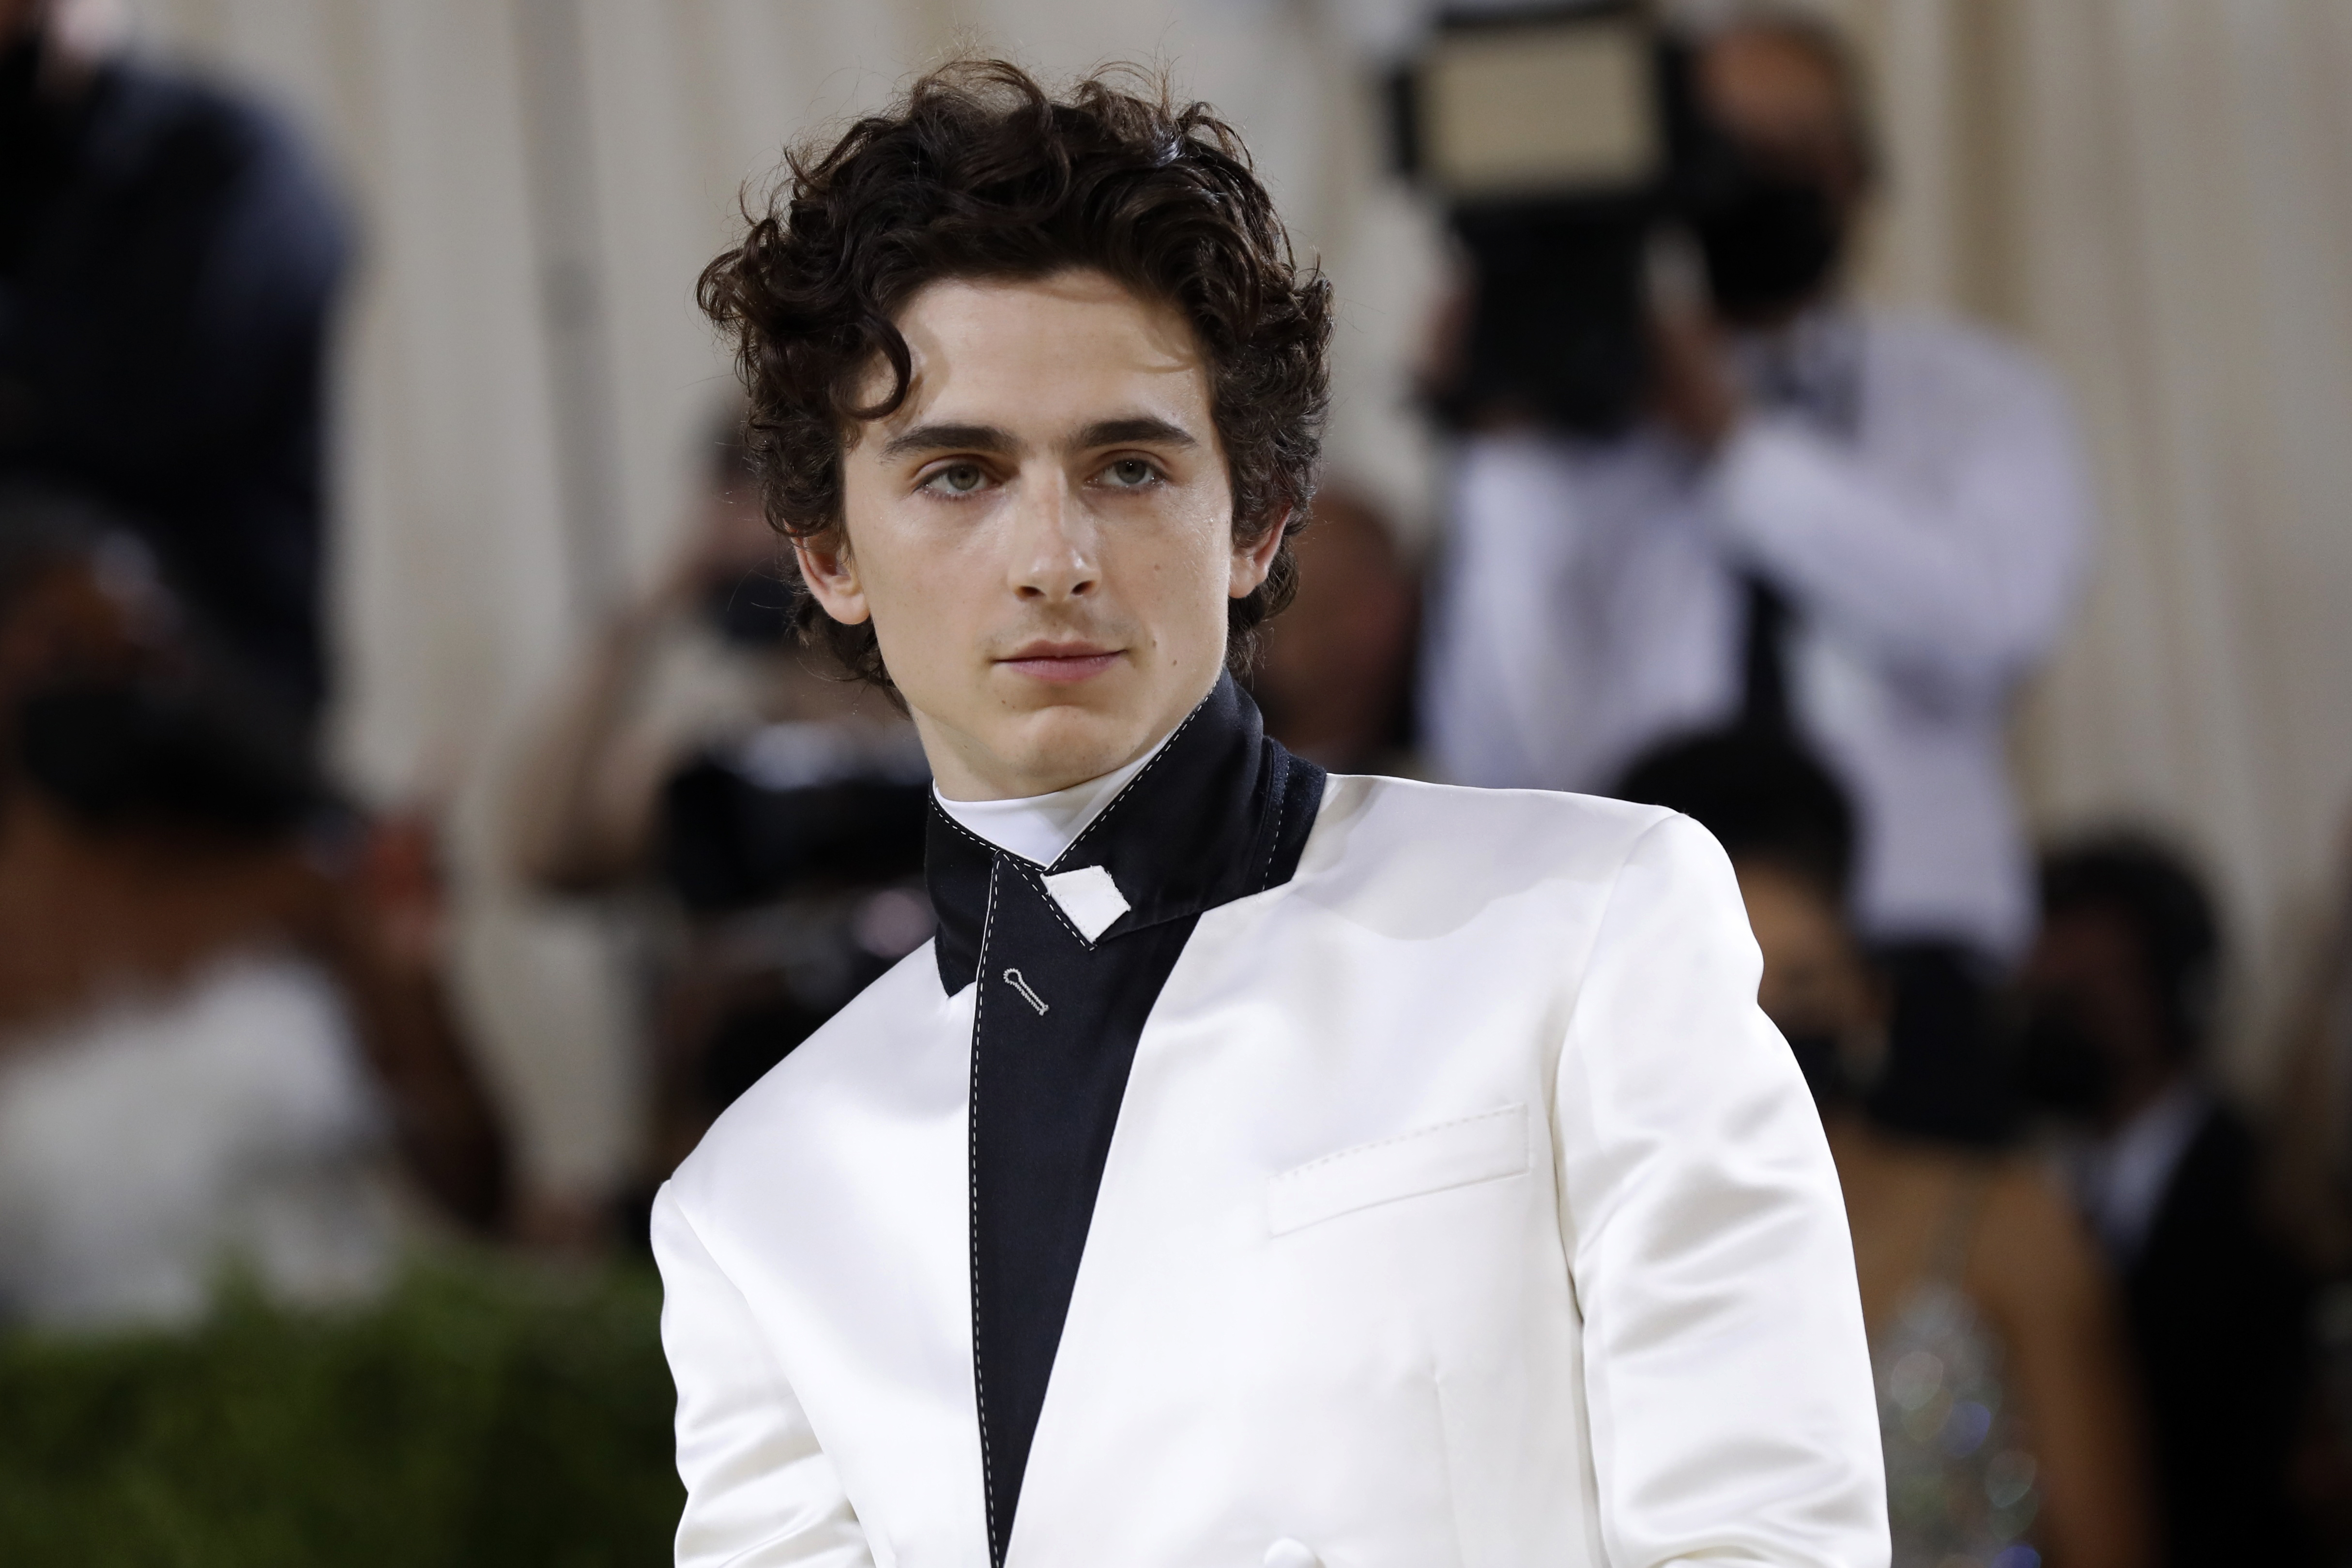 Metropolitan Museum of Art Costume Institute Gala - Met Gala - In America: A Lexicon of Fashion - Arrivals - New York City, U.S. - September 13, 2021. Timothee Chalamet. REUTERS/Mario Anzuoni